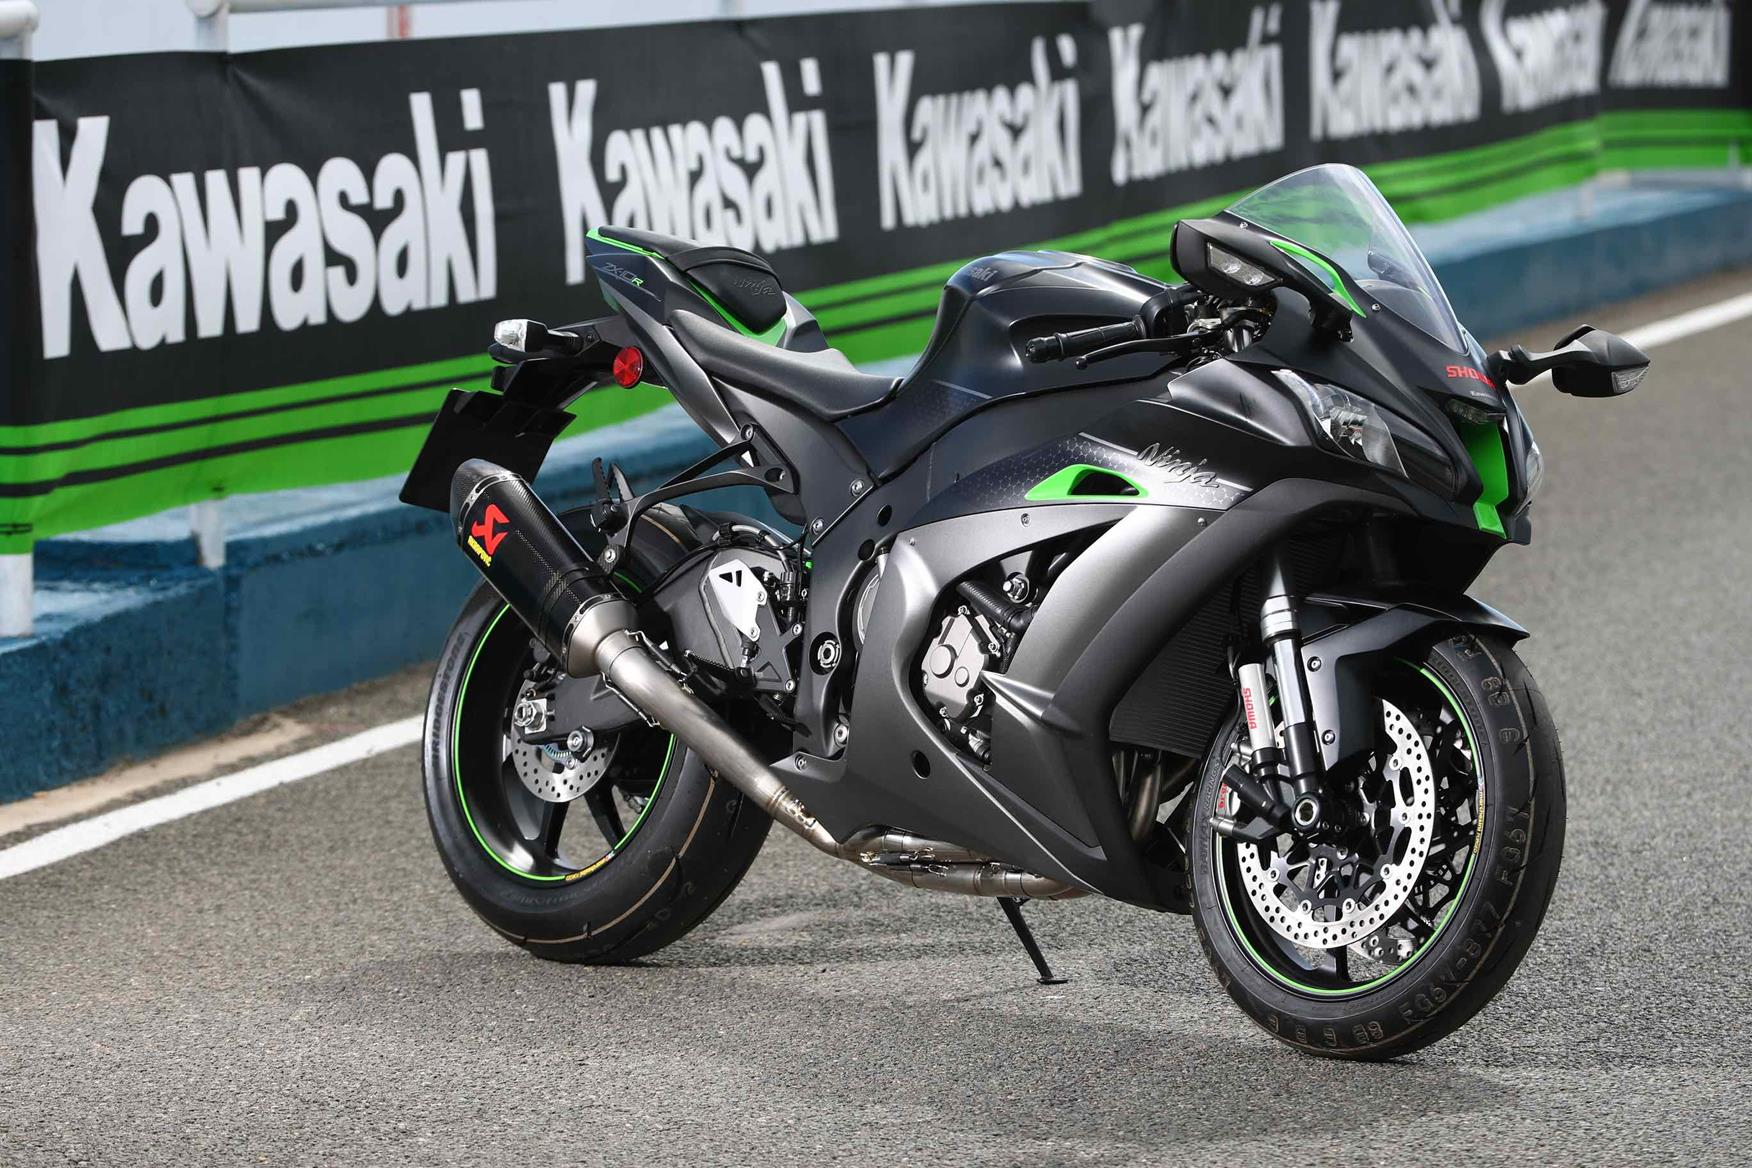 Kawasaki Zx 10r Se First Ride Electronic Suspension The Best Of